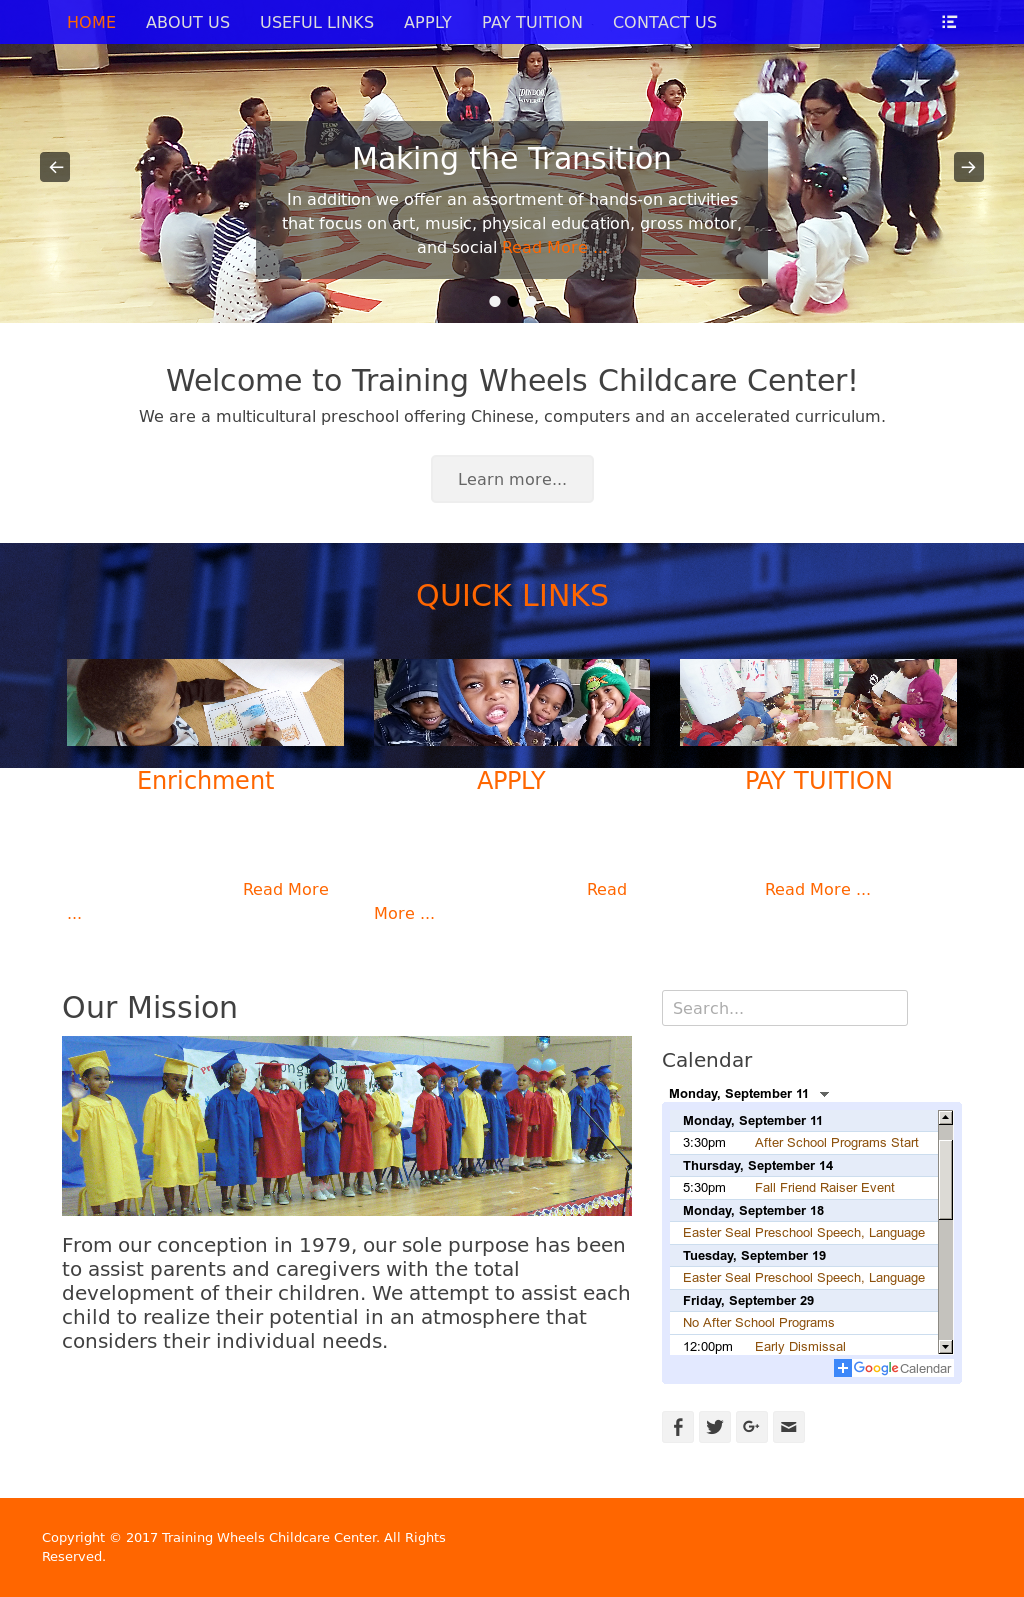 Training Wheels Childcare Center Competitors, Revenue and Employees